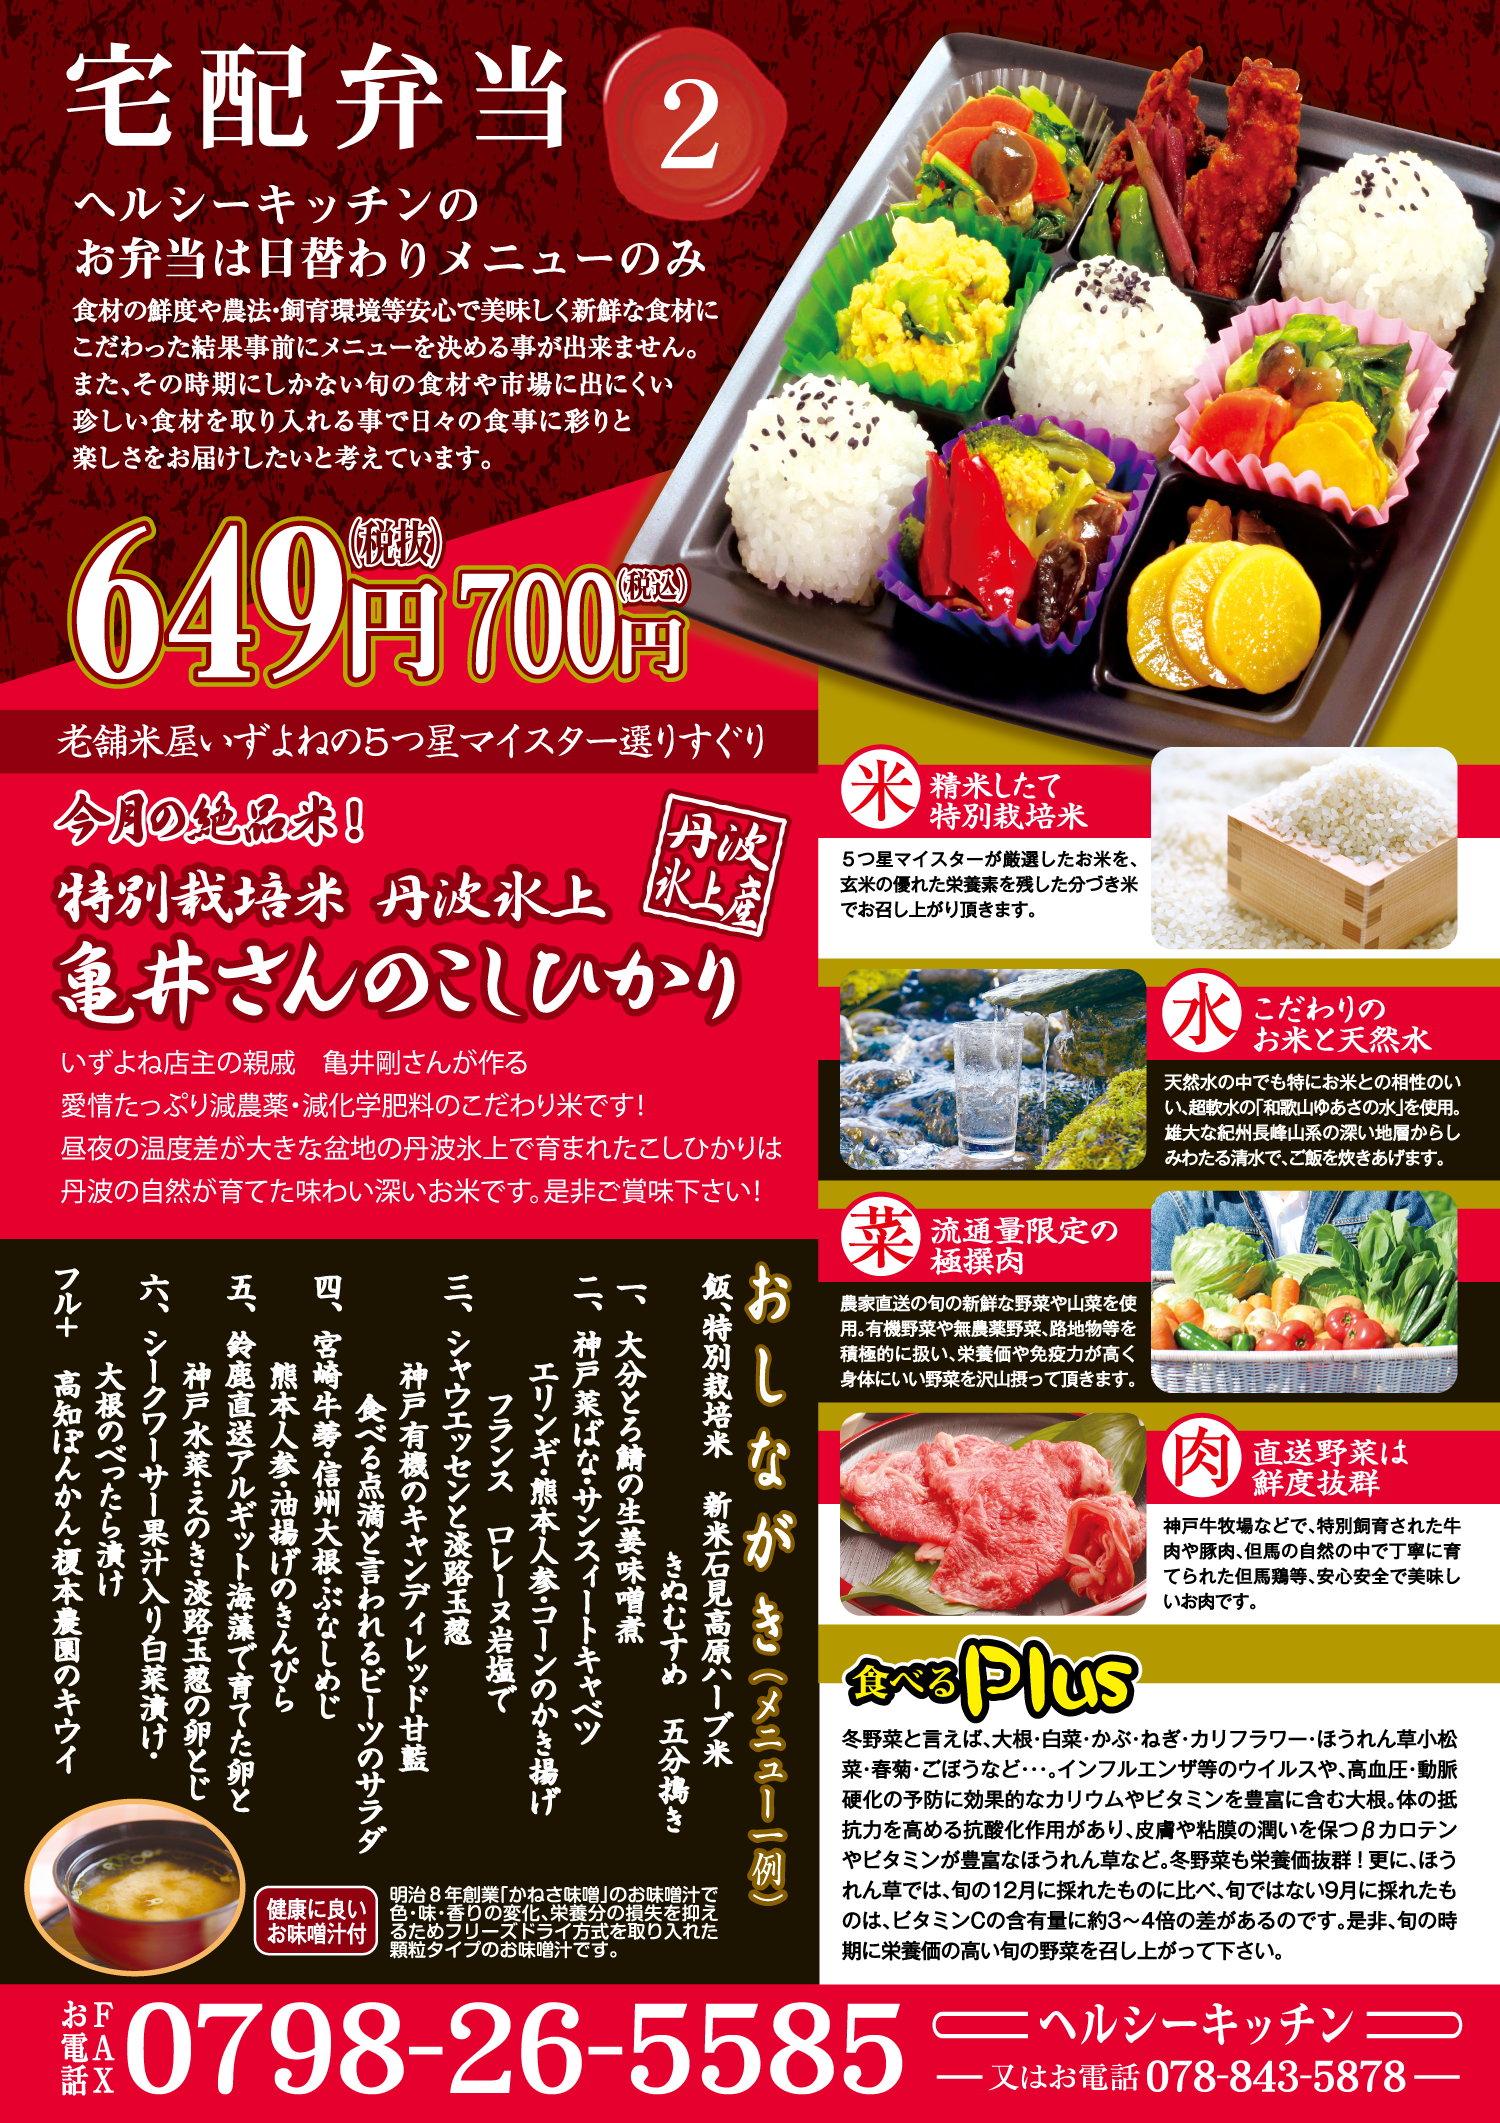 http://healthy-kitchen.jp/wp-content/uploads/9f1c708a99ead58faad8b154117417fb.png